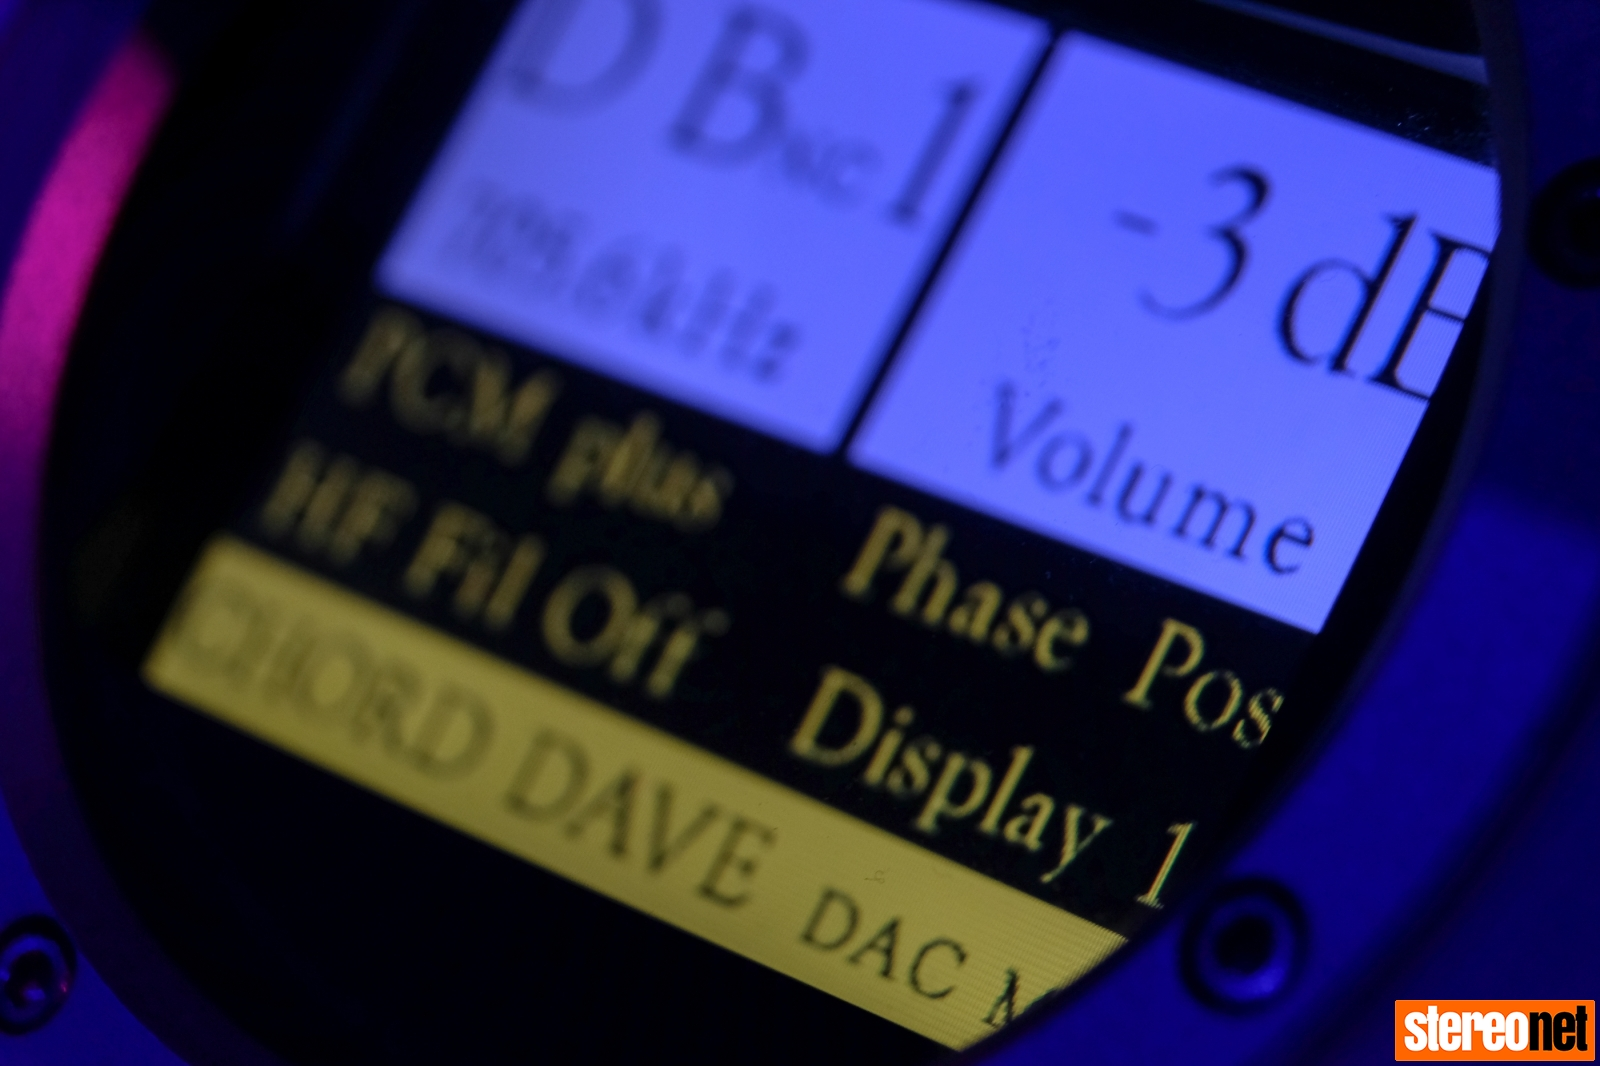 Chord Electronics DAVE Colour Display